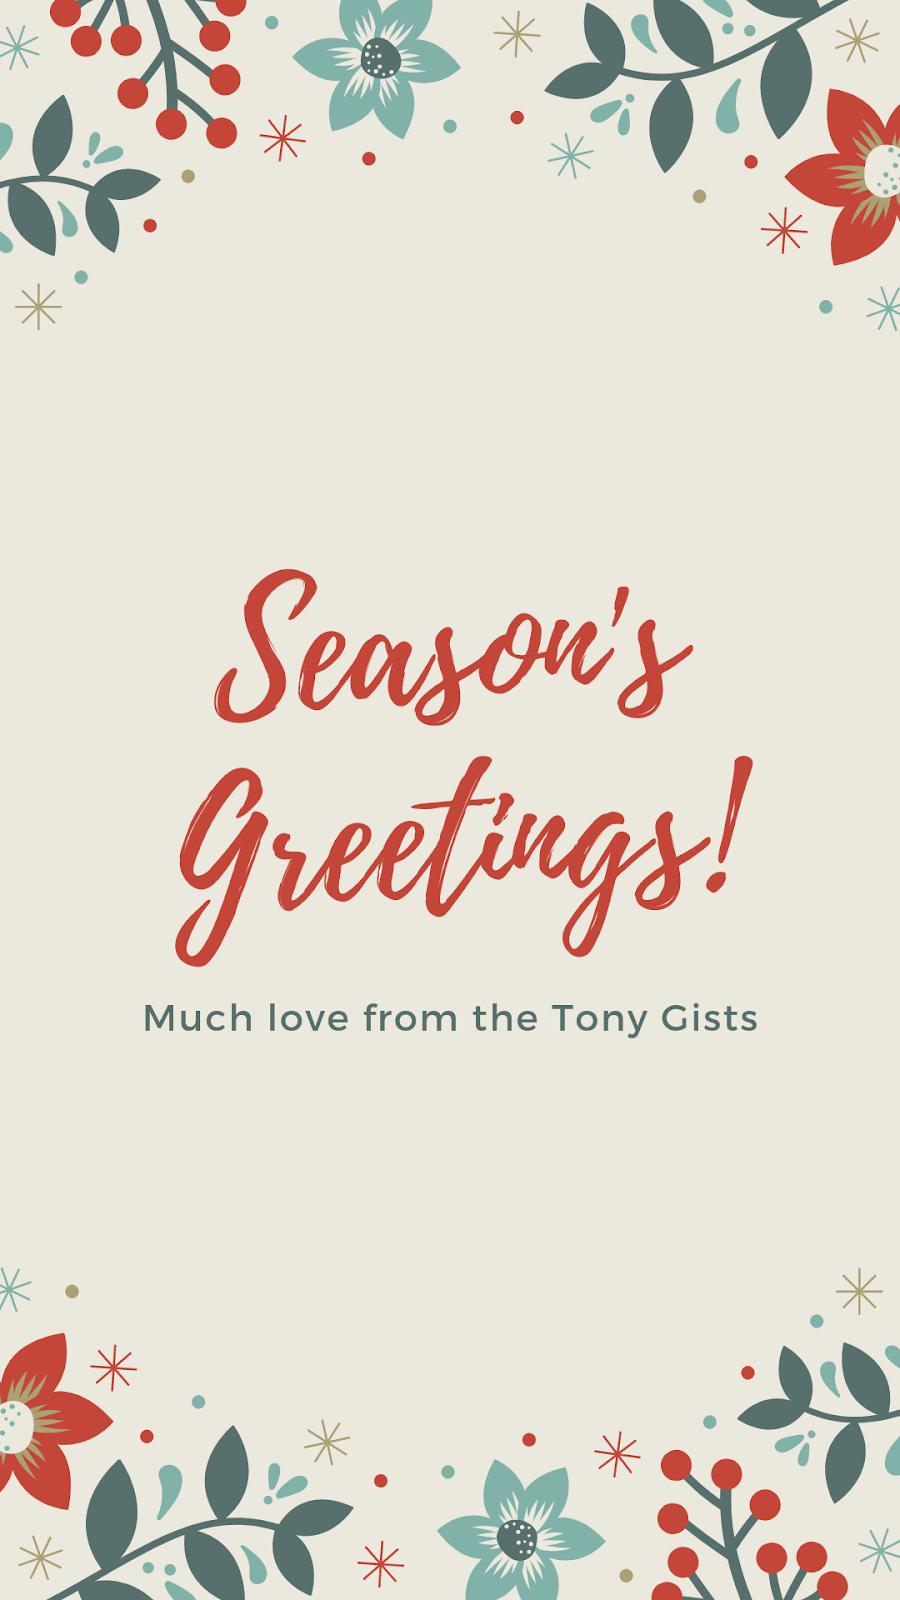 Season's Greetings From Tony GISTS